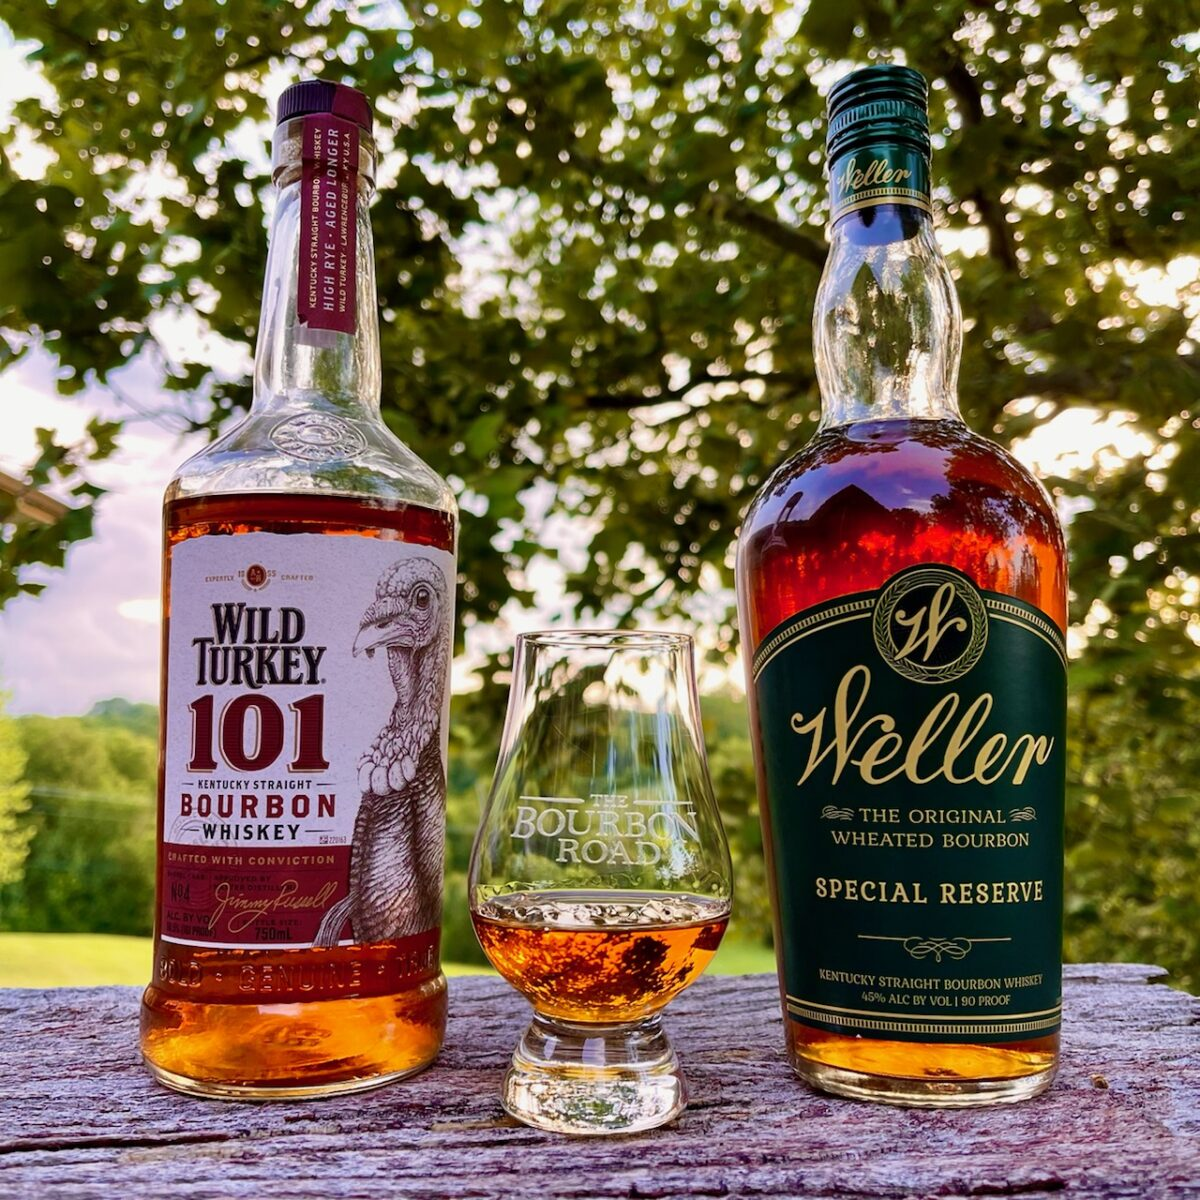 Reminiscing with Weller and Wild Turkey